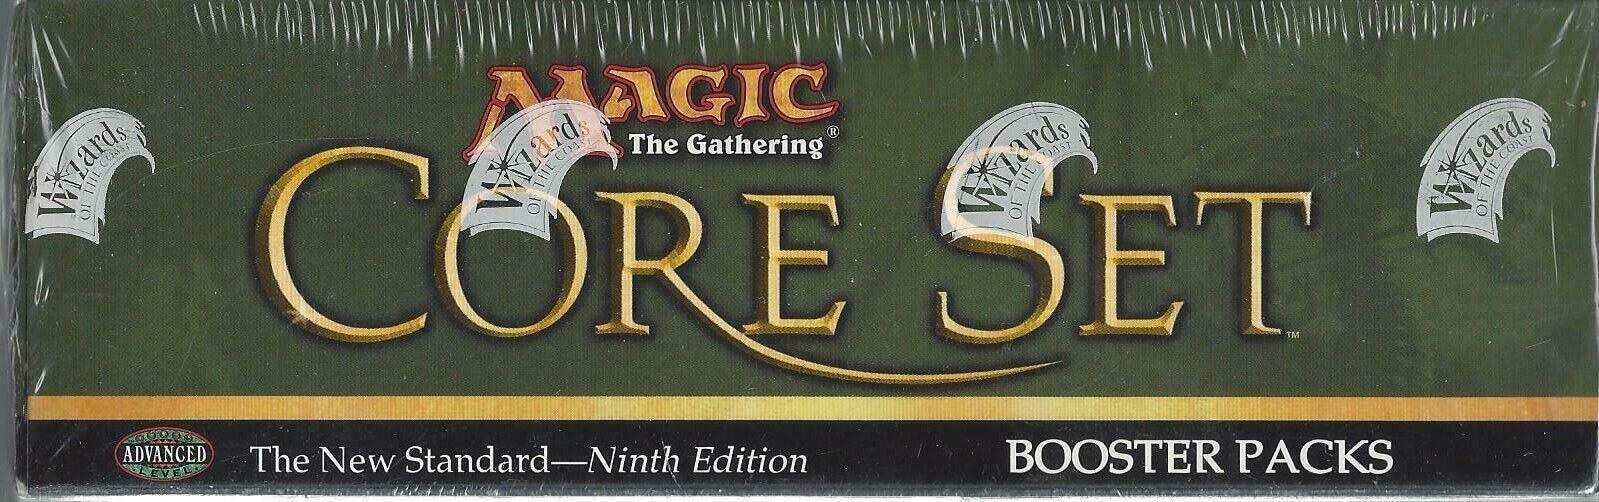 MTG Magic the Gathering - Factory Sealed - 9 th Edition Core Set Booster Box